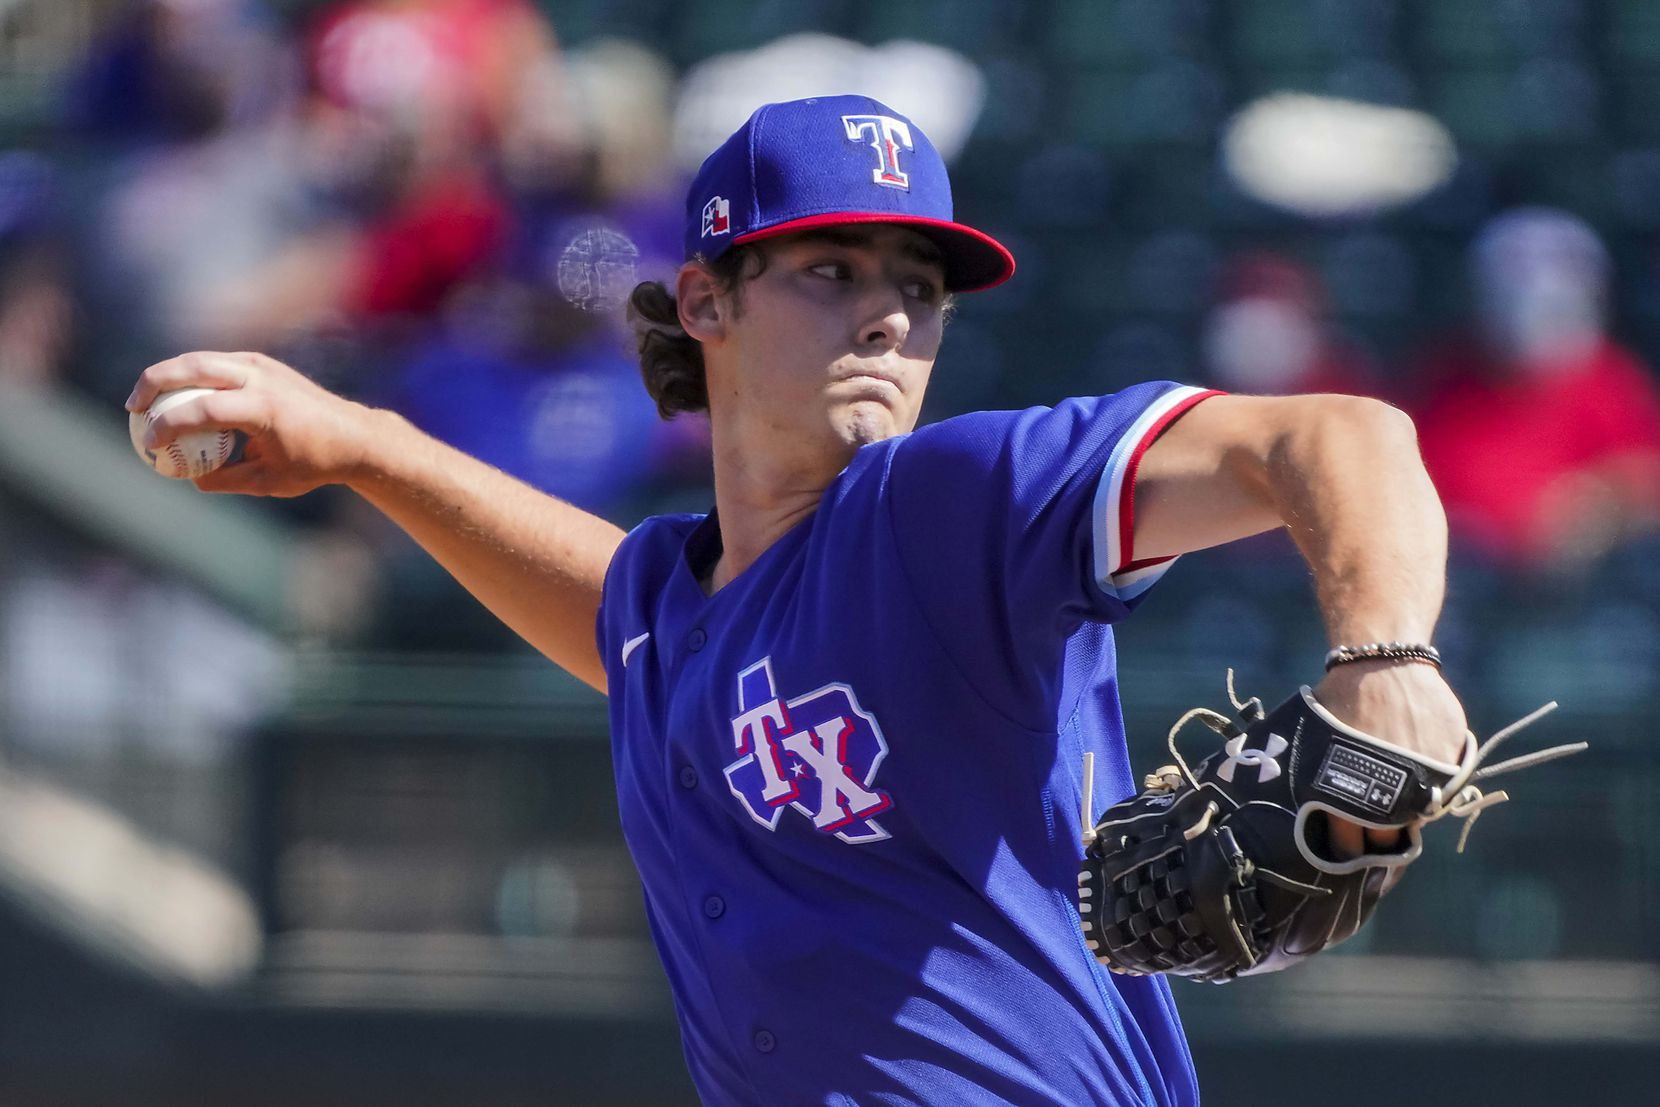 Texas Rangers pitcher Cole Winn delivers during the fifth inning of a spring training game against the Cleveland Indians at Surprise Stadium on Tuesday, March 9, 2021, in Surprise, Ariz.